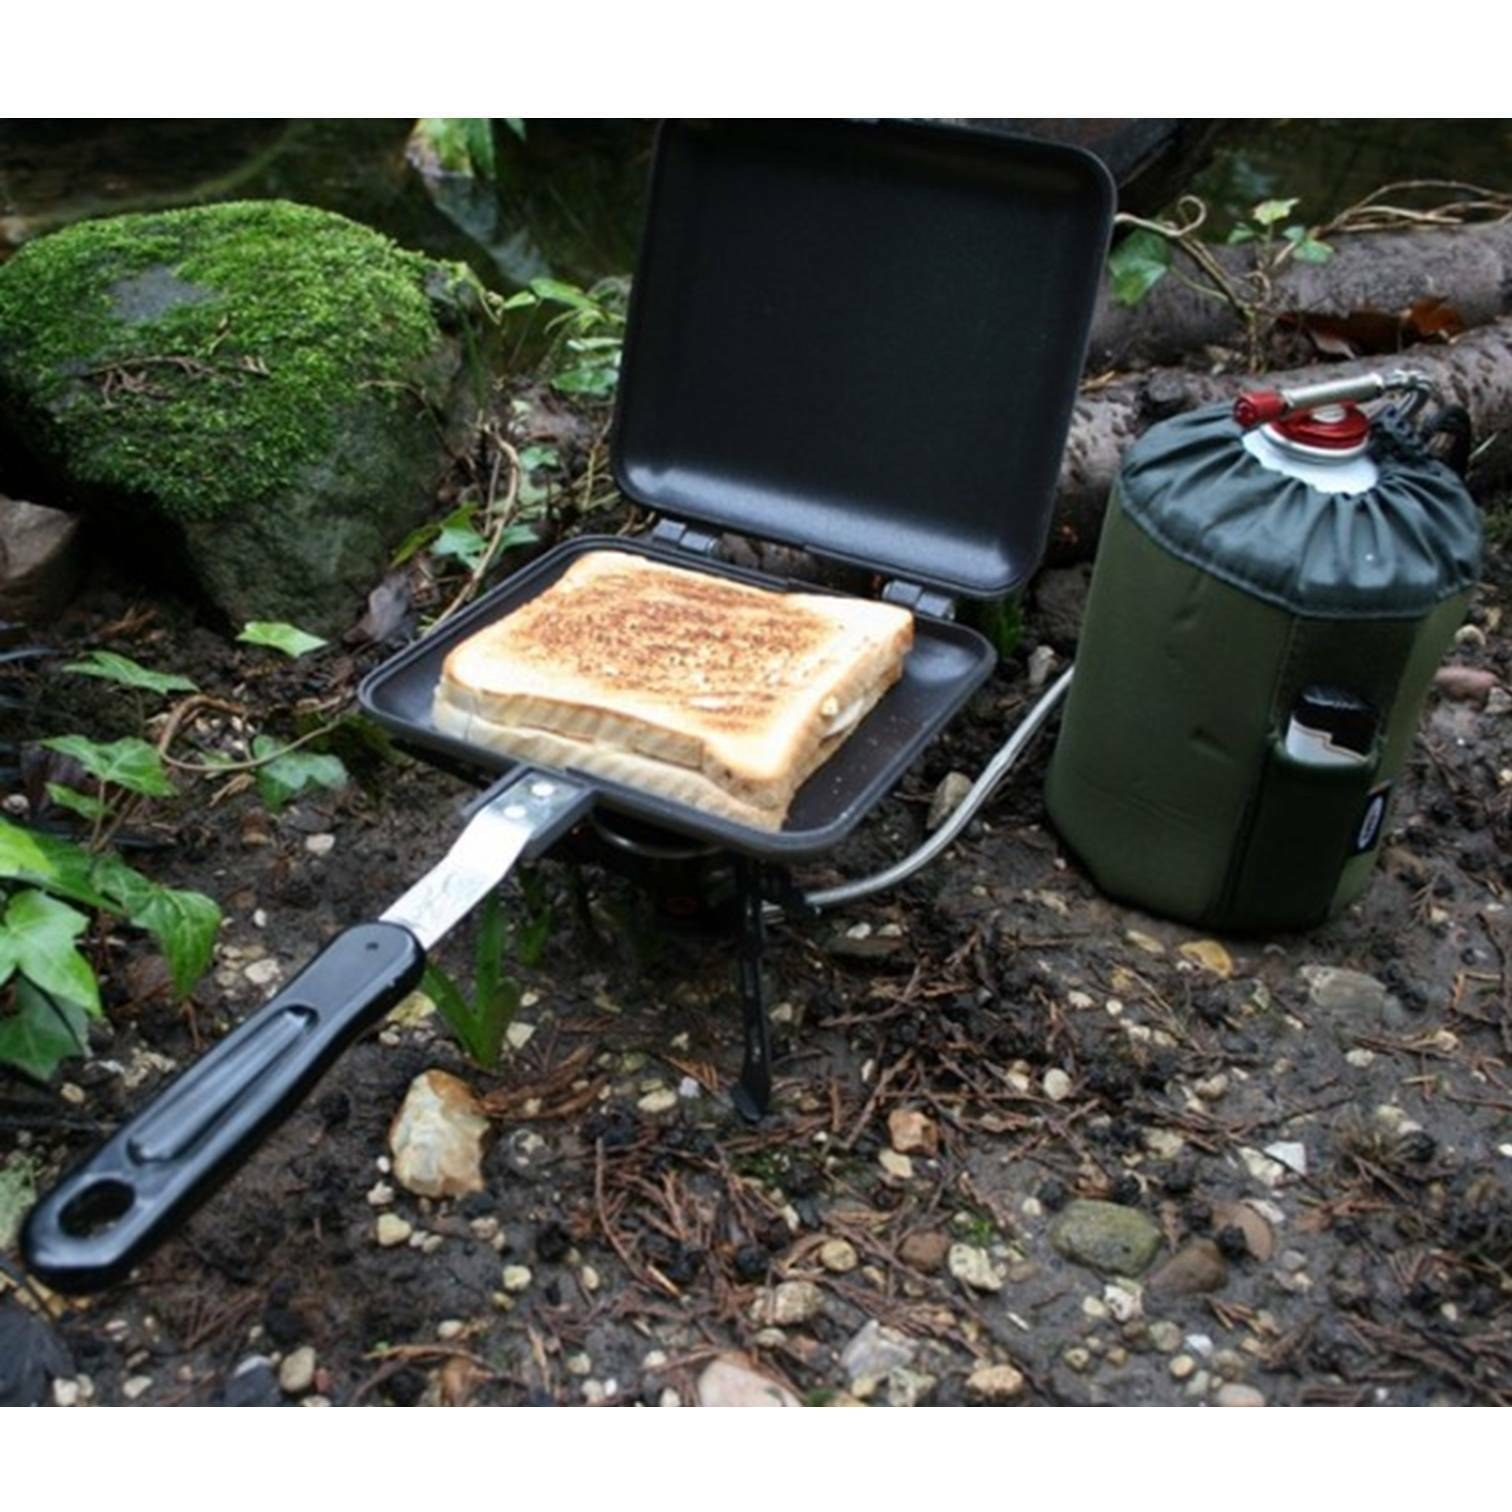 Ngt ancienne sandwich grille-pain tostie sable wich maker carp fishing tackle camping